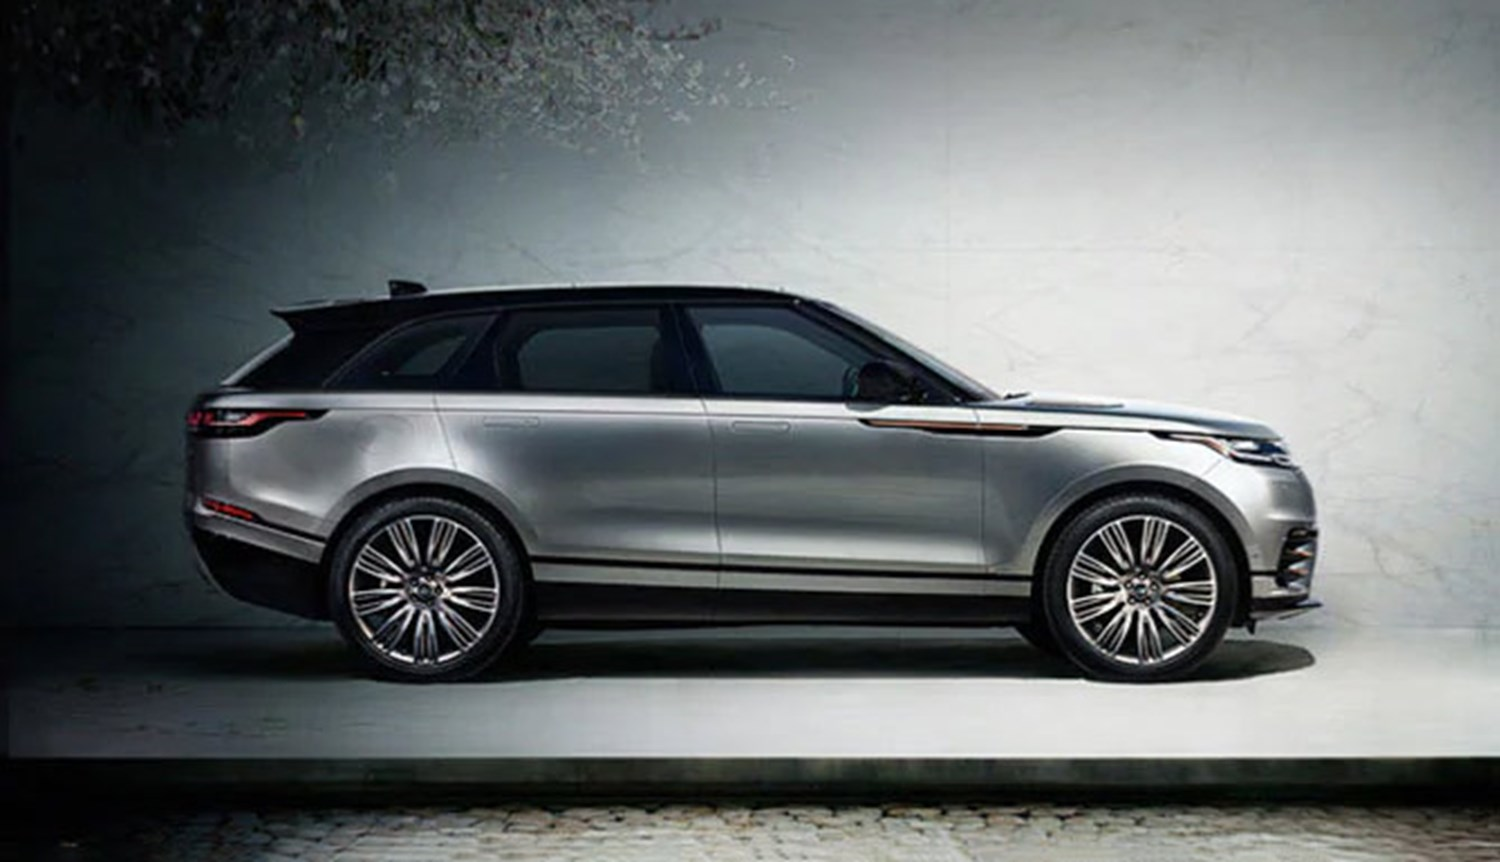 Range Rover Velar in Silver in front of wall